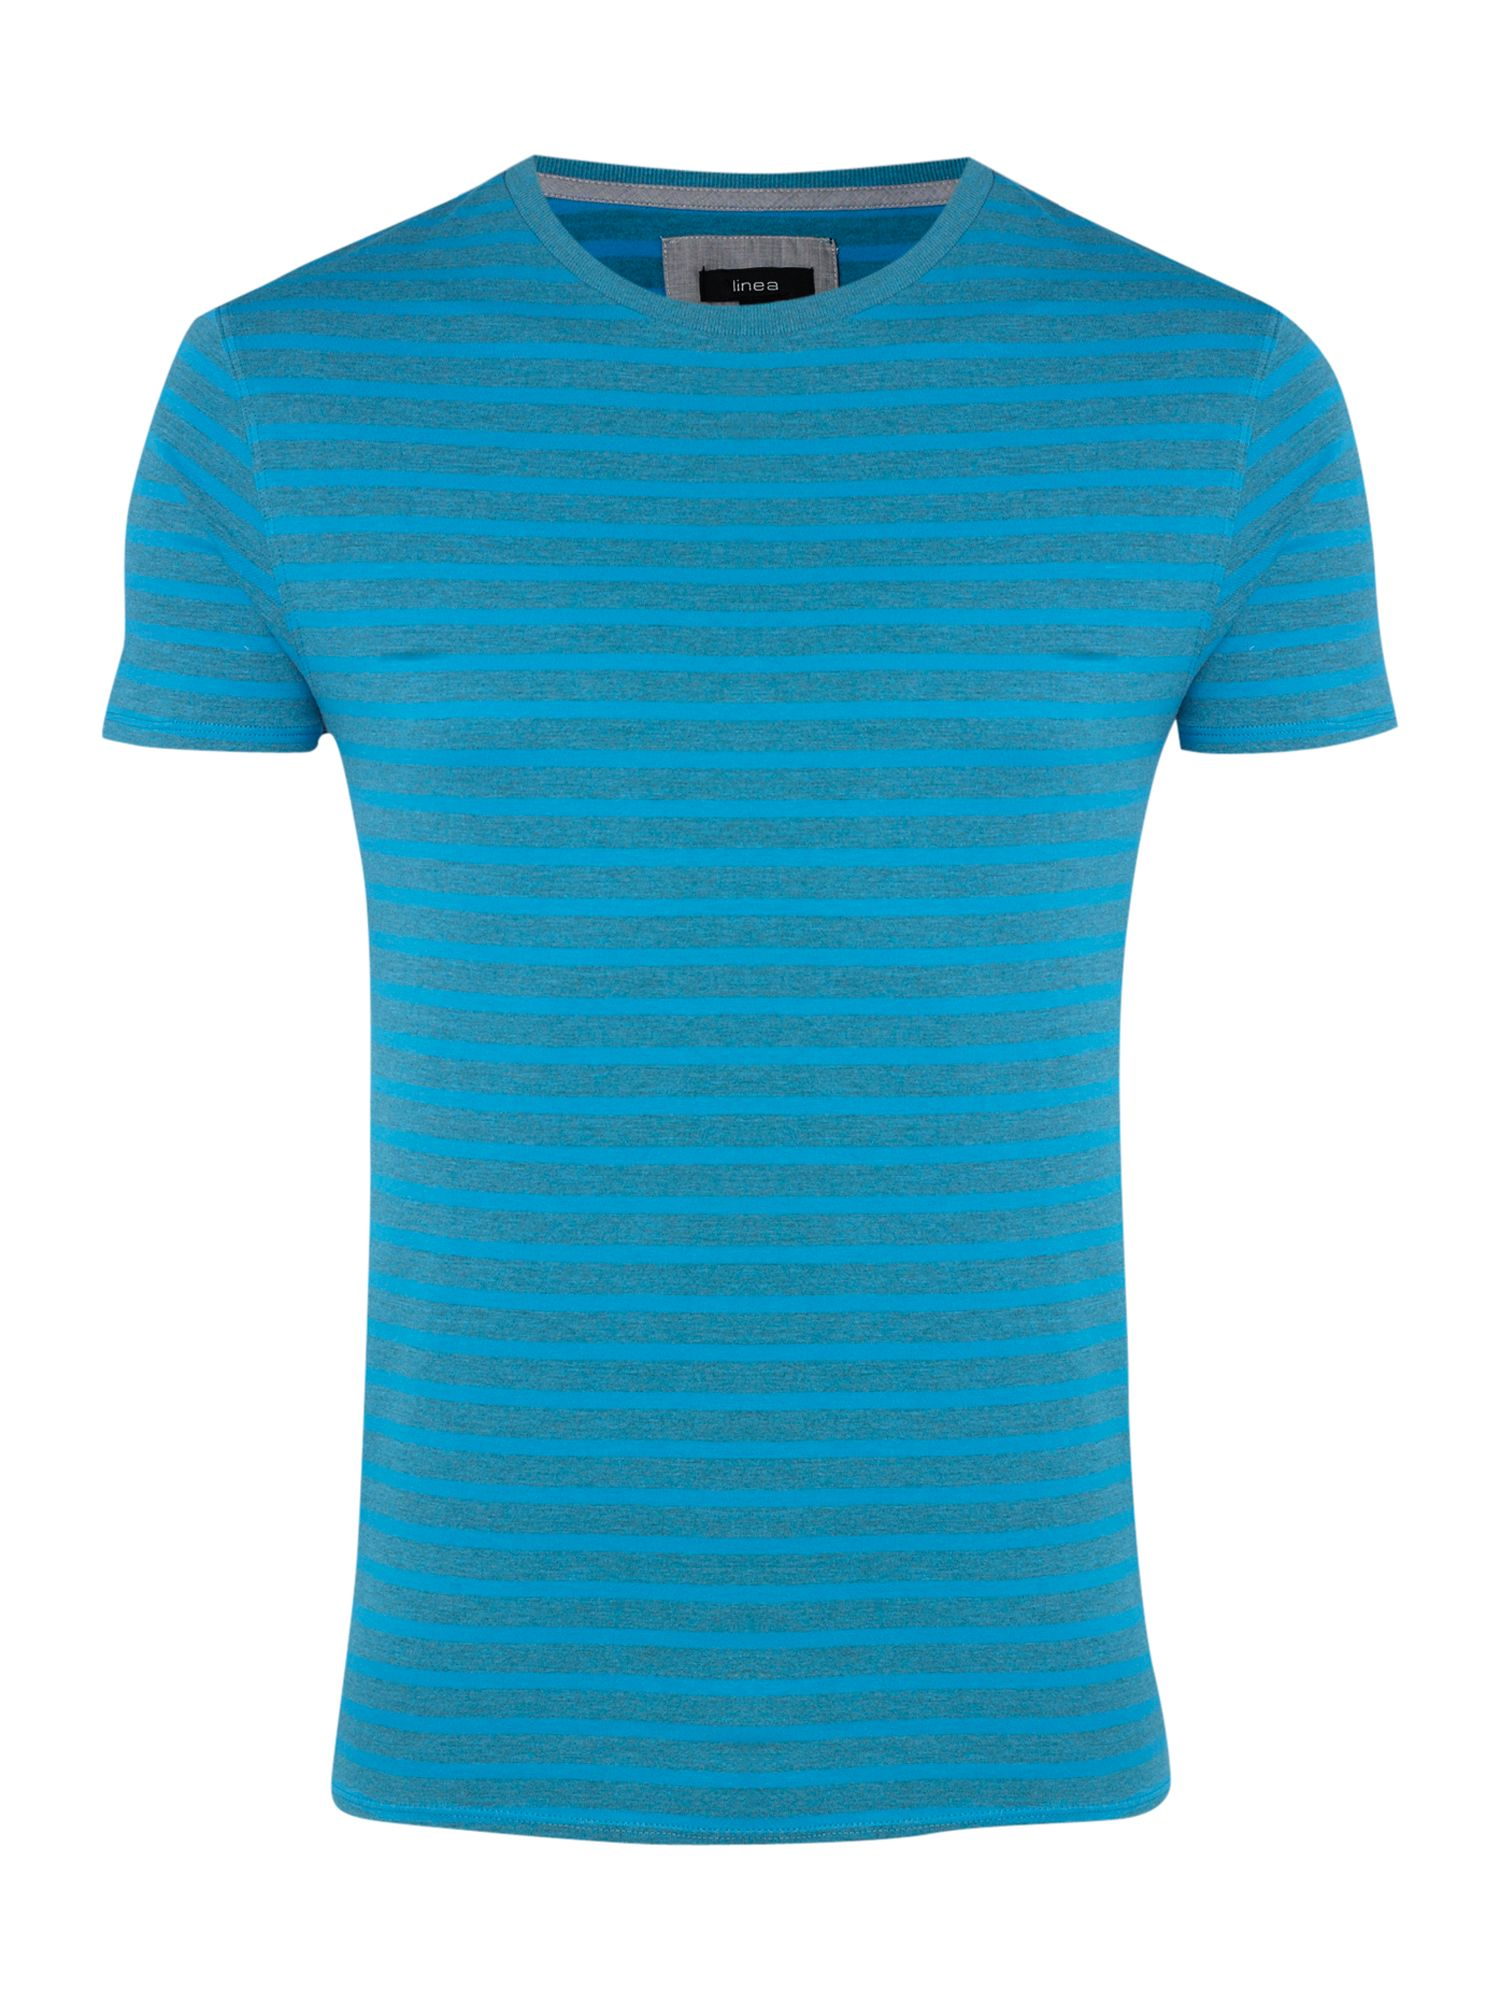 Linea Striped marl crew neck T-shirt - Tropical product image